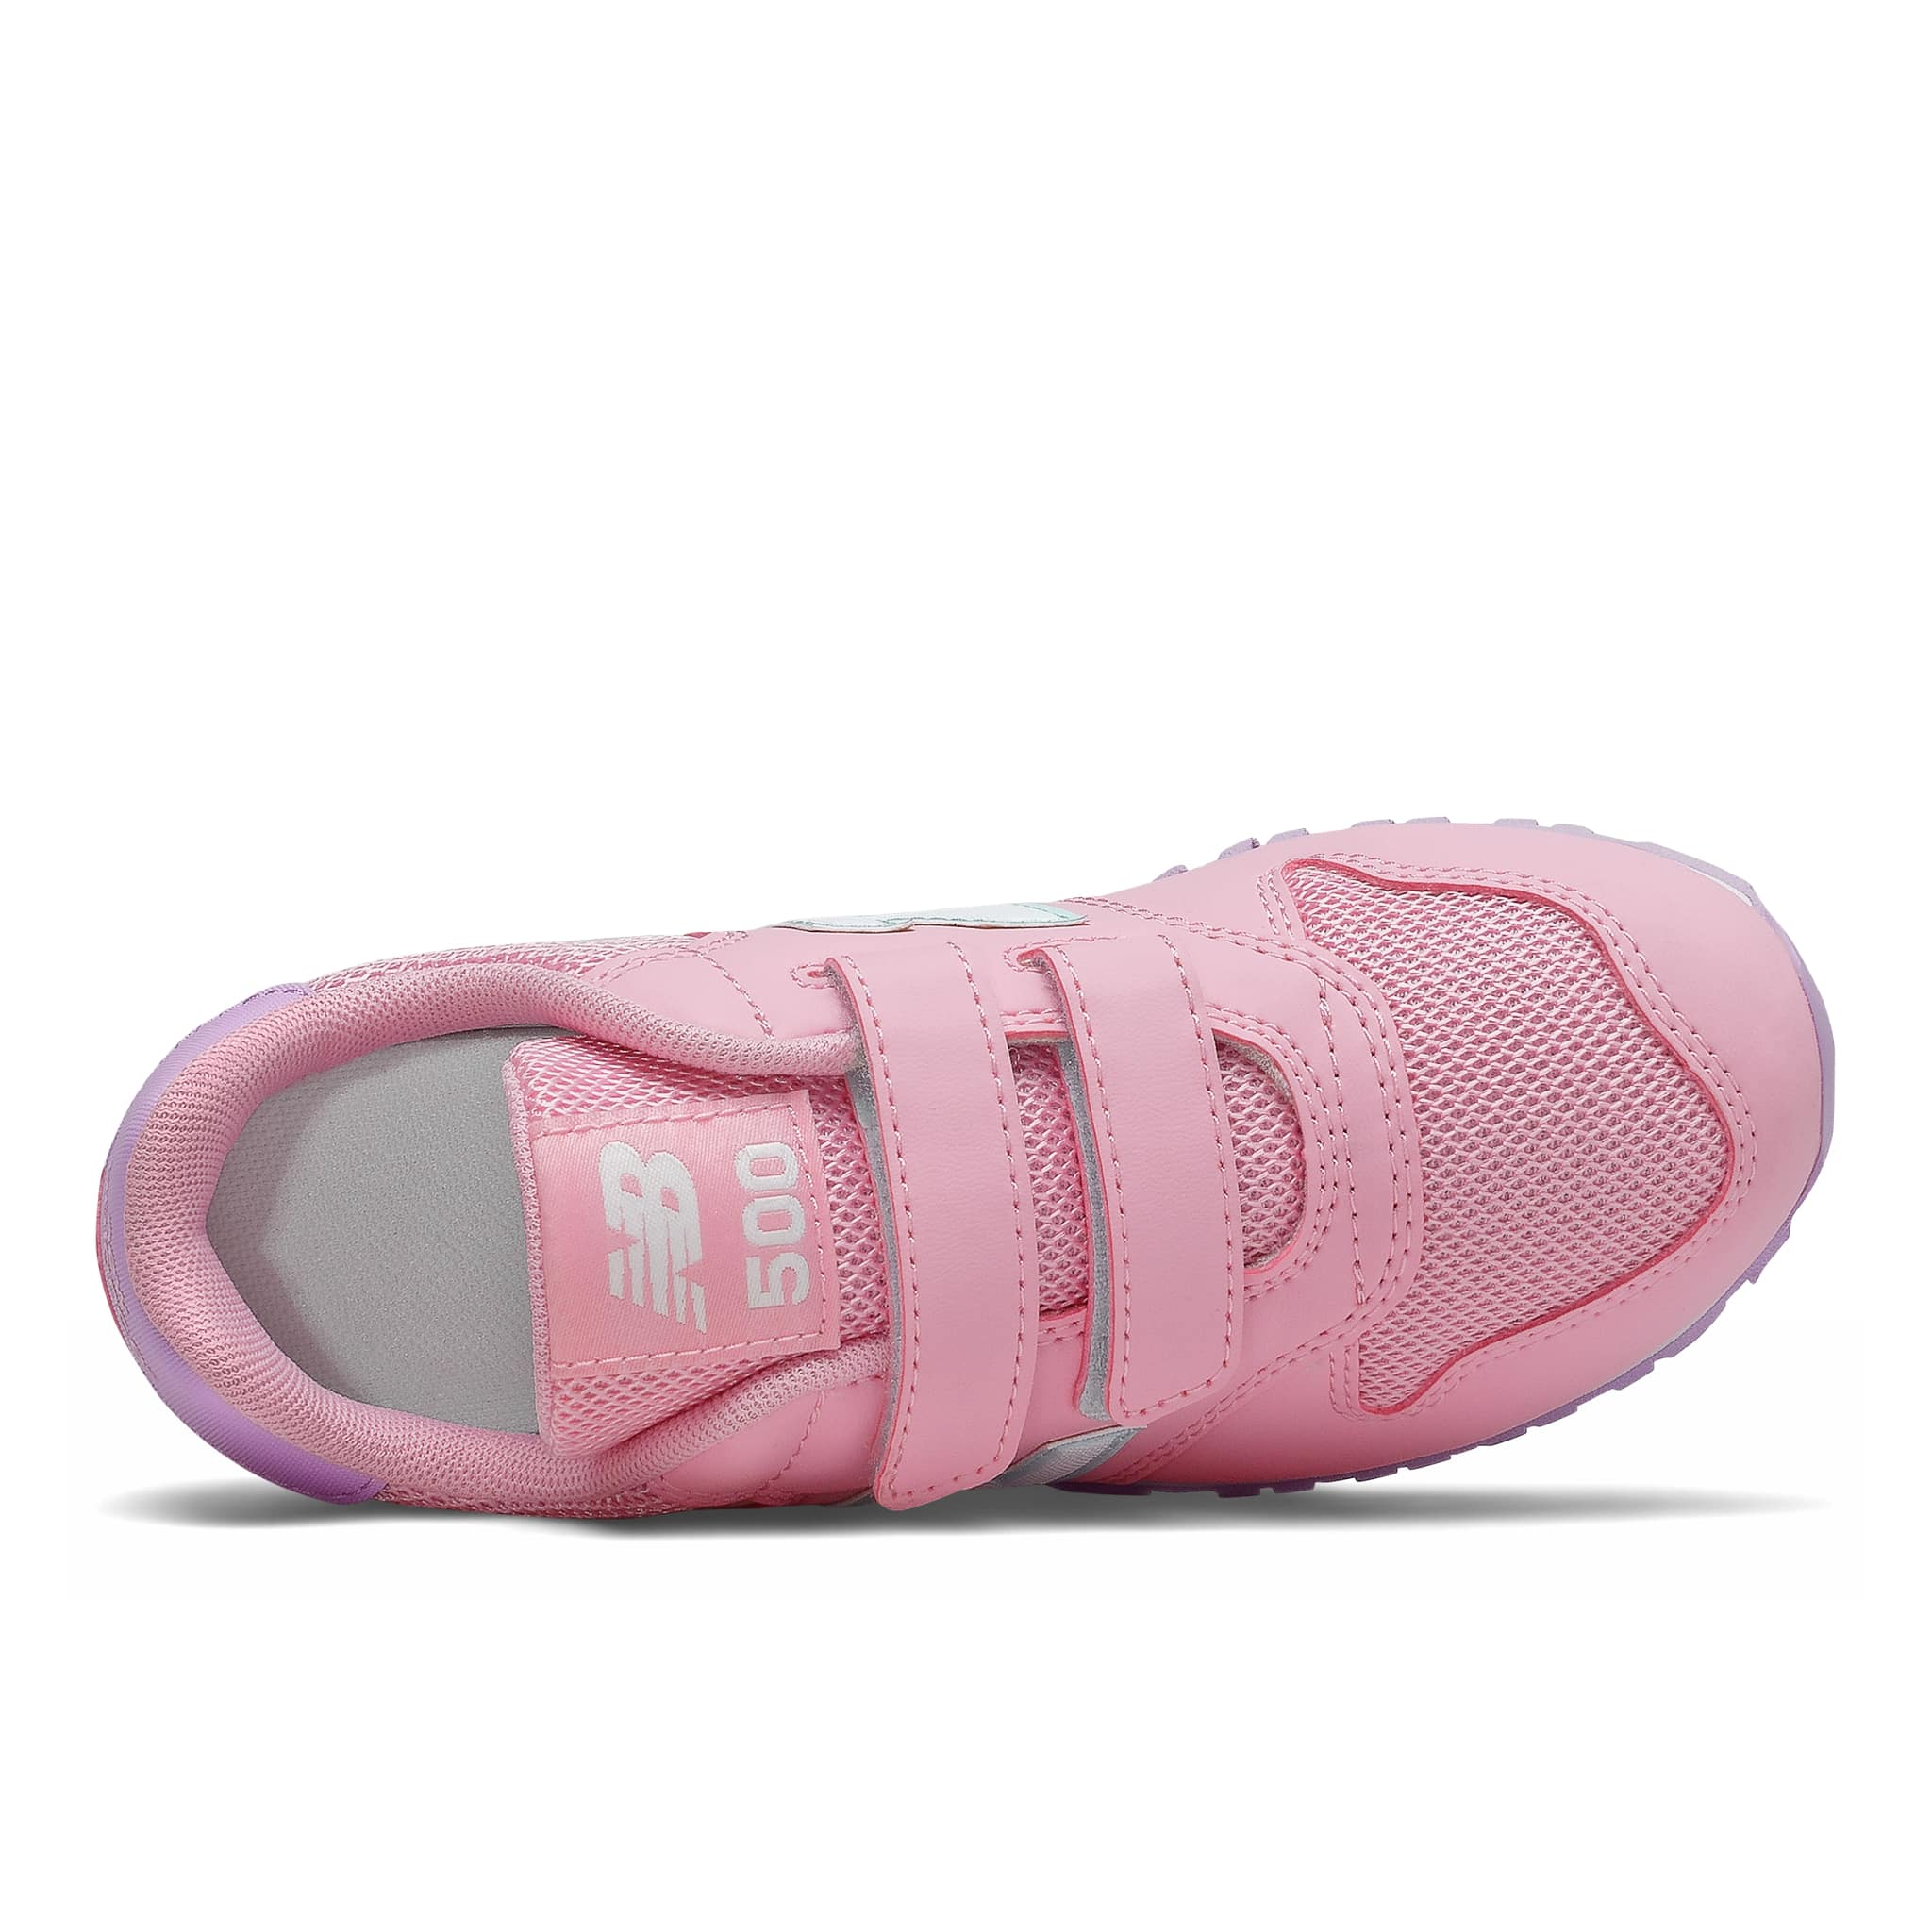 New Balance 500 sneakers, pink, 45